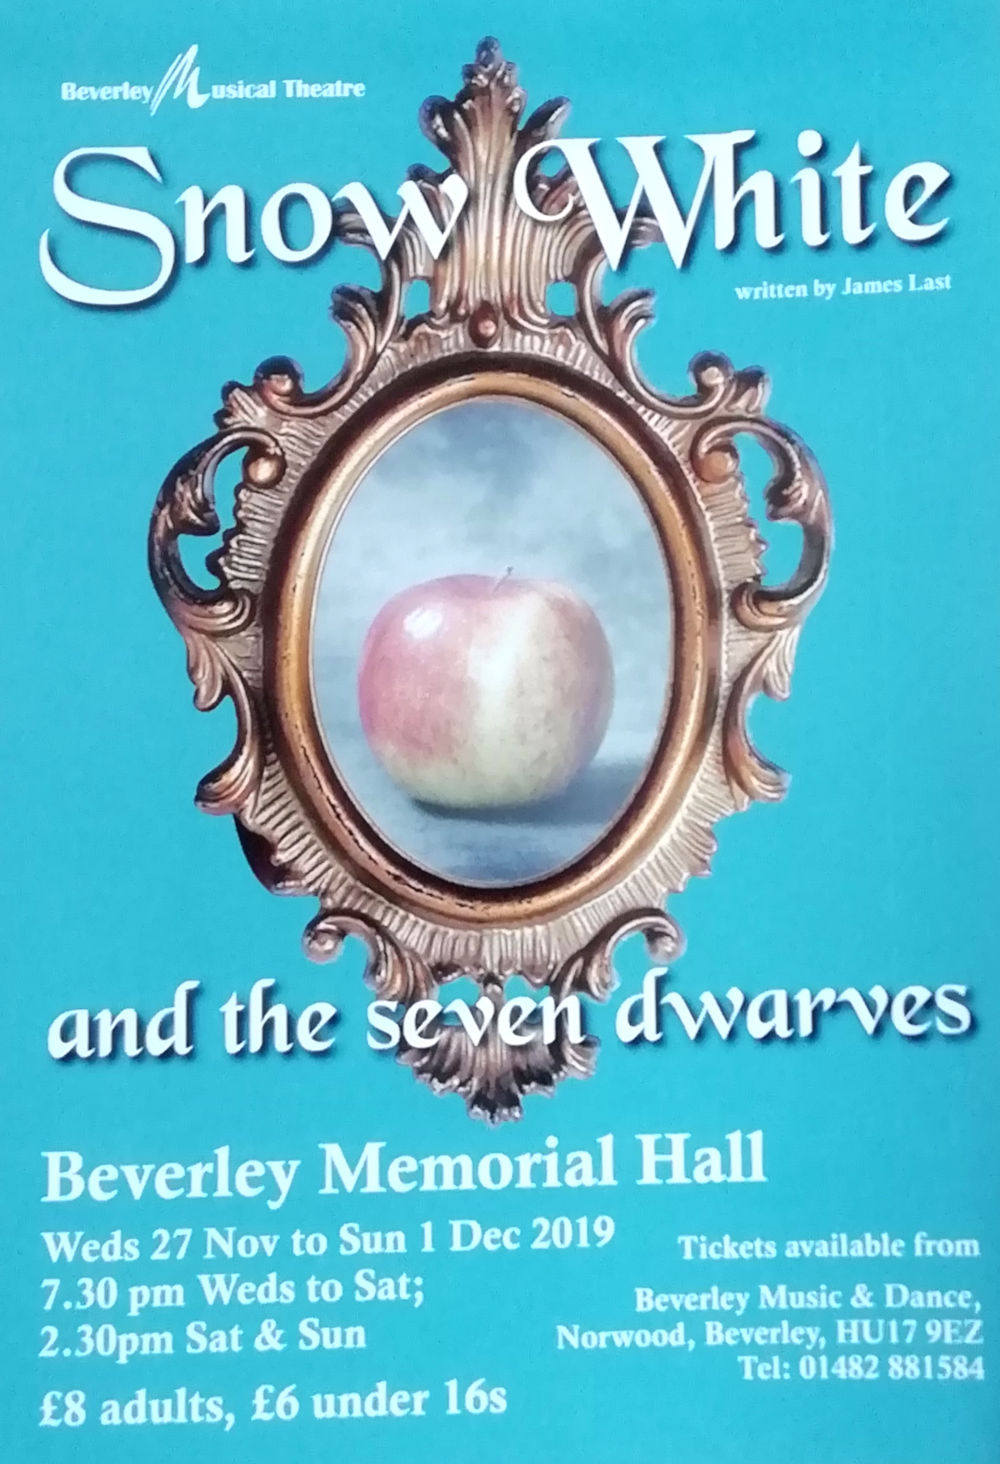 pantomime: Snow White and the Seven Dwarves, at Beverley Memorial Hall, November 2019.